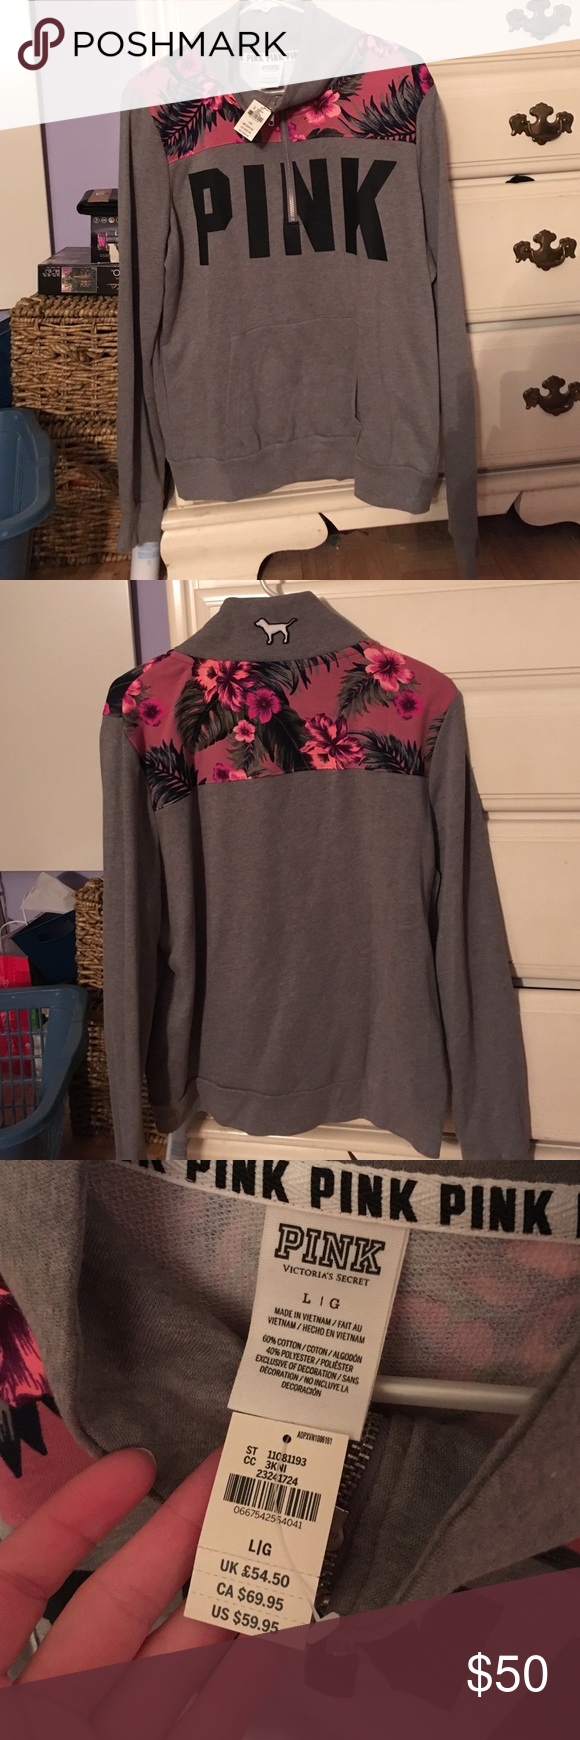 Pink Victoria Secret Hoodie Pink hoodie with floral. Brand new with tags, never worn. Size Large. Offers welcome. PINK Victoria's Secret Sweaters